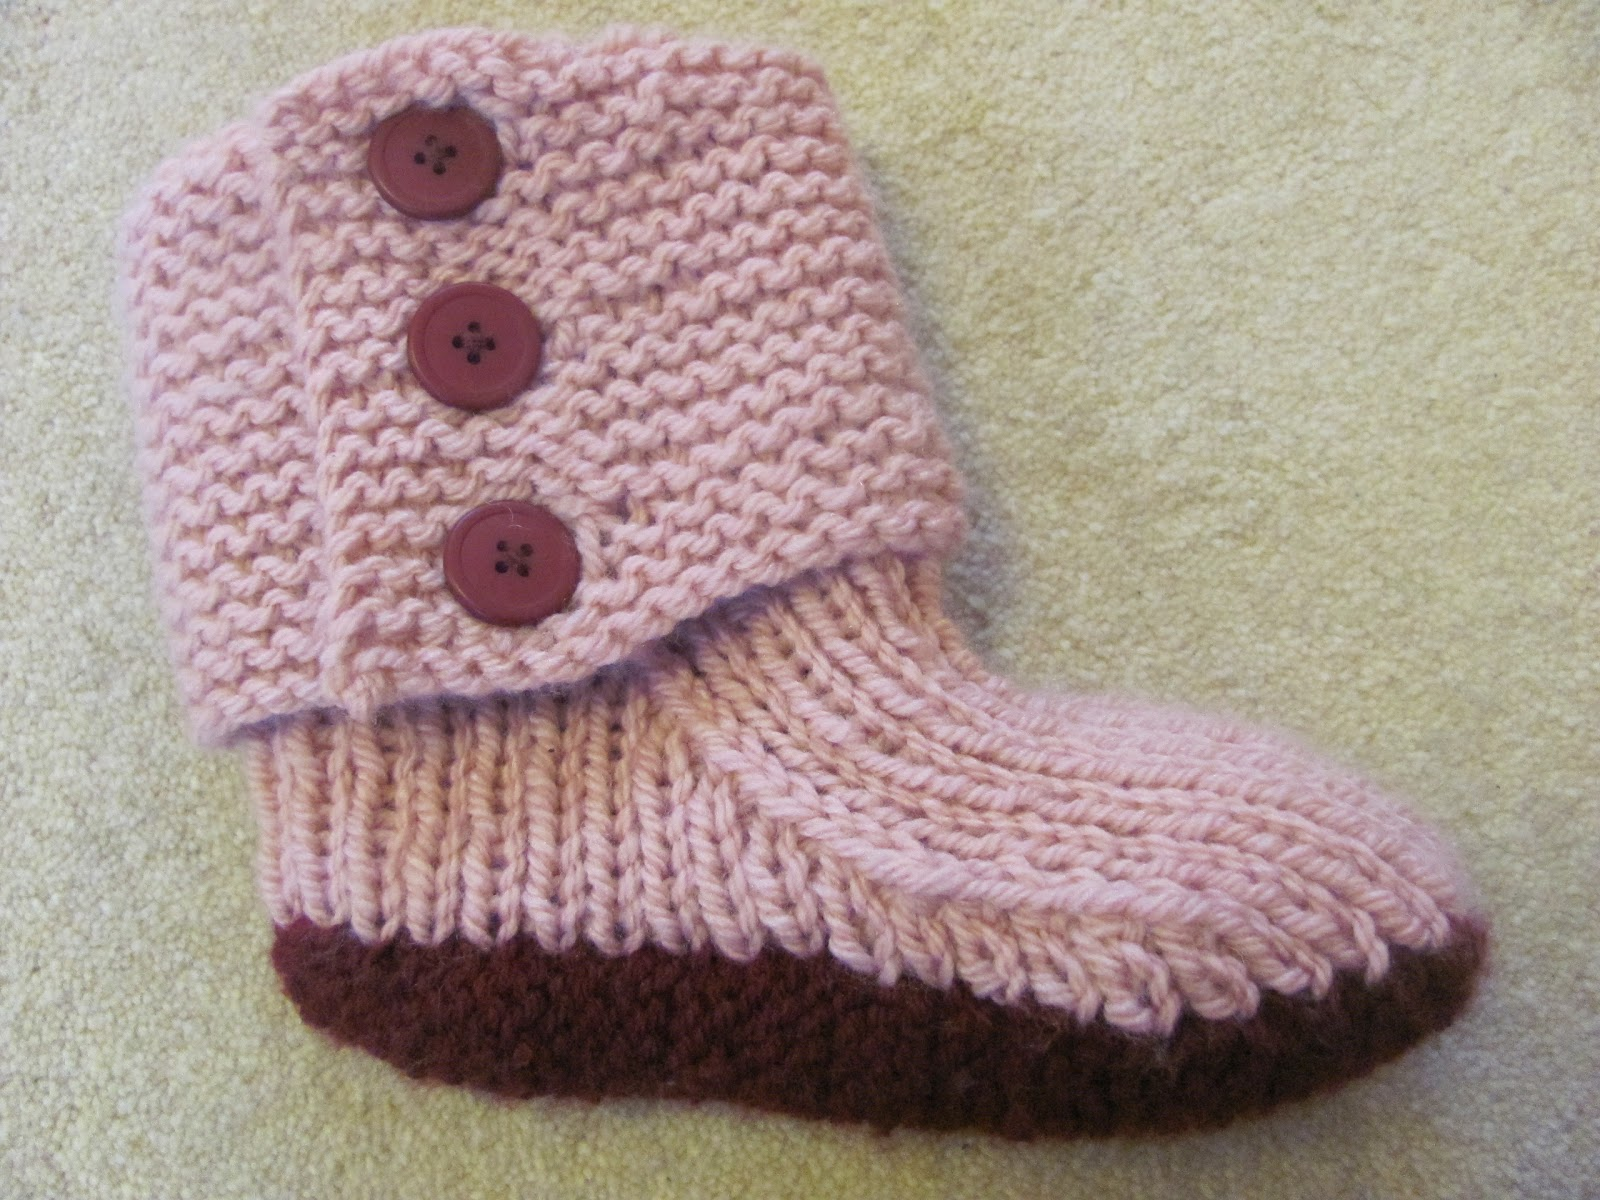 Slipper Patterns Knitting : Slippers Pattern Knitting Patterns Gallery